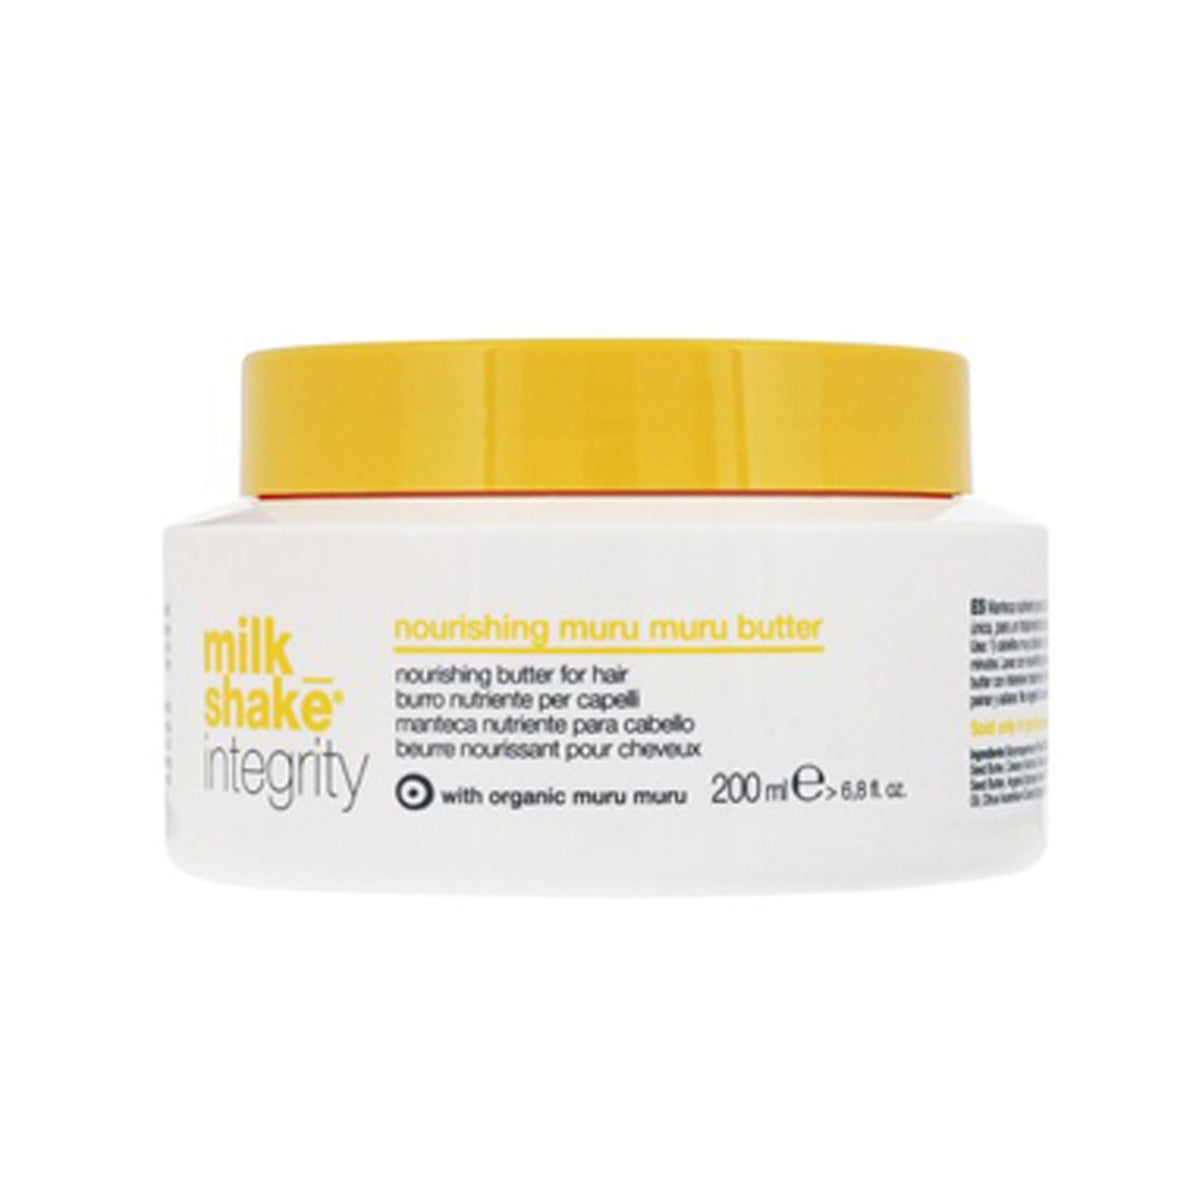 Milkshake Integrity Nourishing Muru Muru Butter 200ml